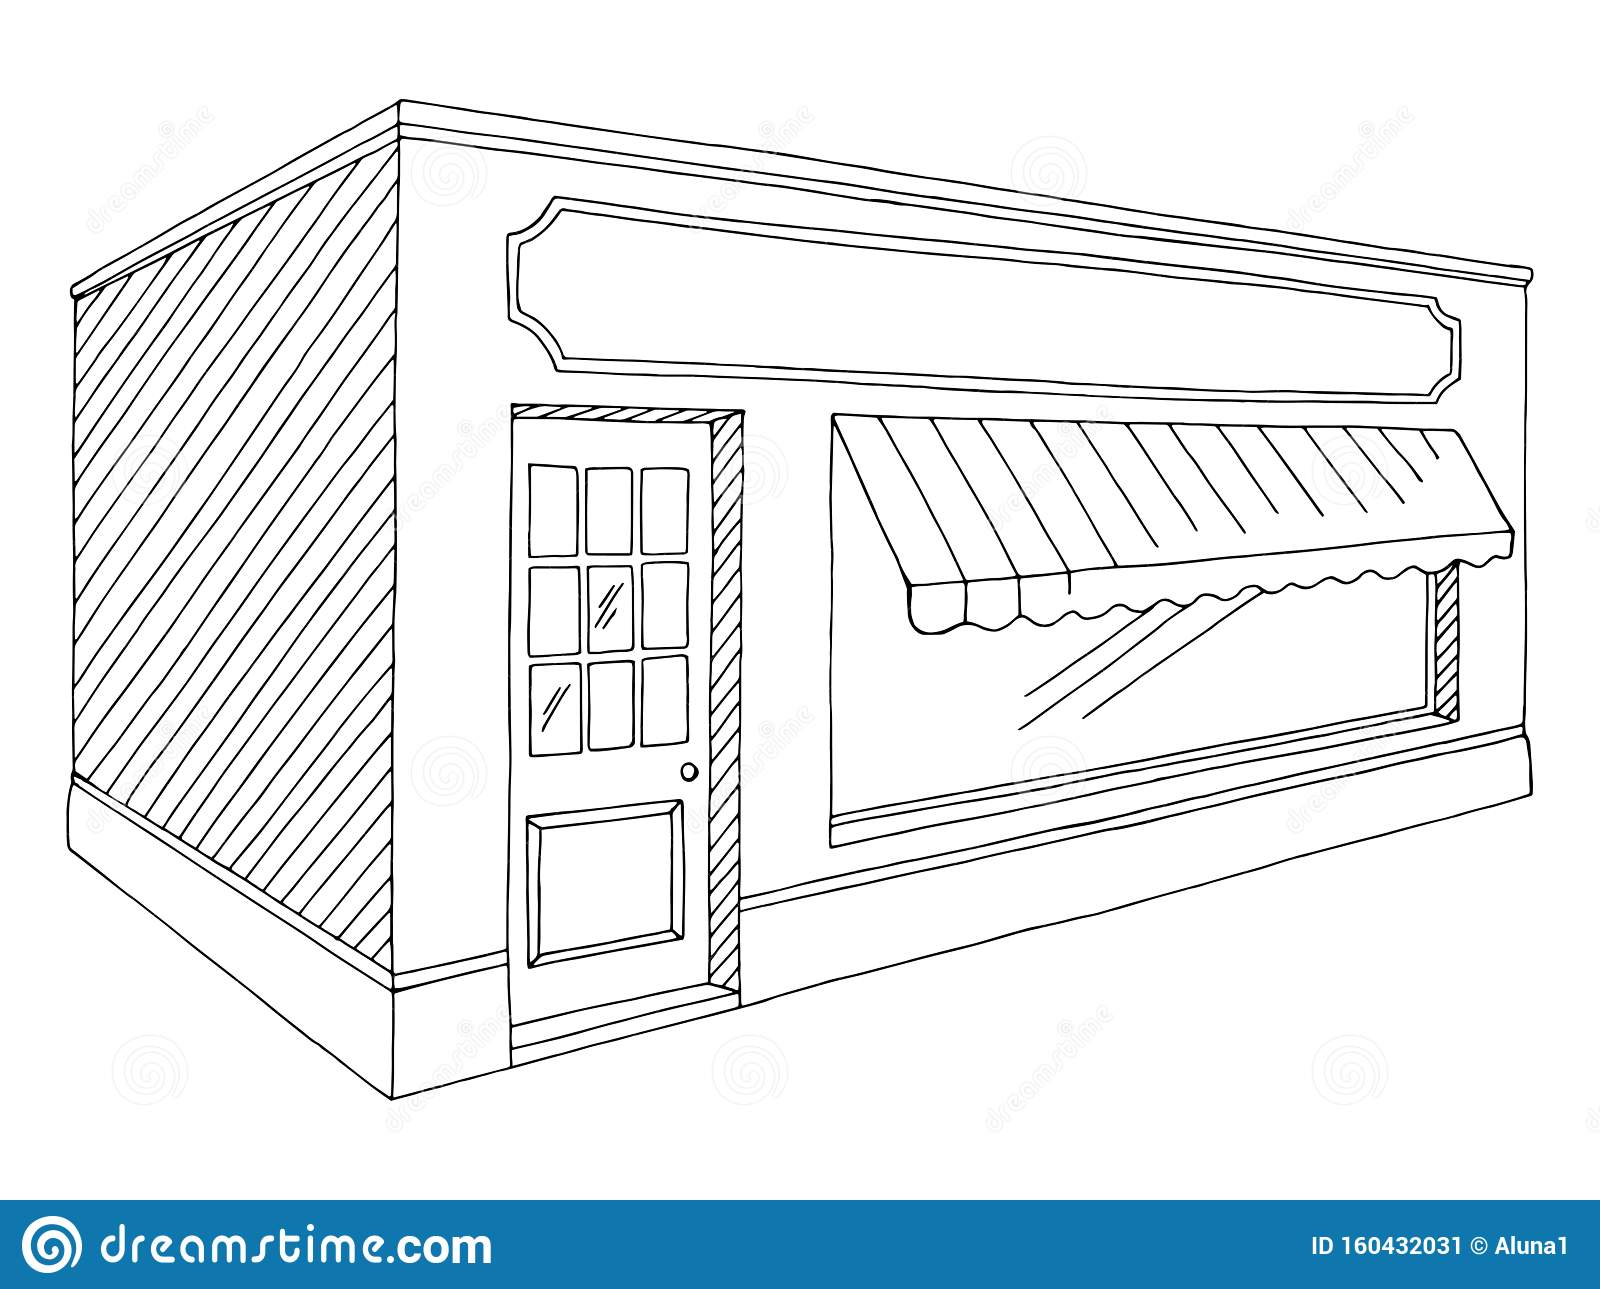 Exterior Restaurant Sketch Stock Illustrations 832 Exterior Restaurant Sketch Stock Illustrations Vectors Clipart Dreamstime